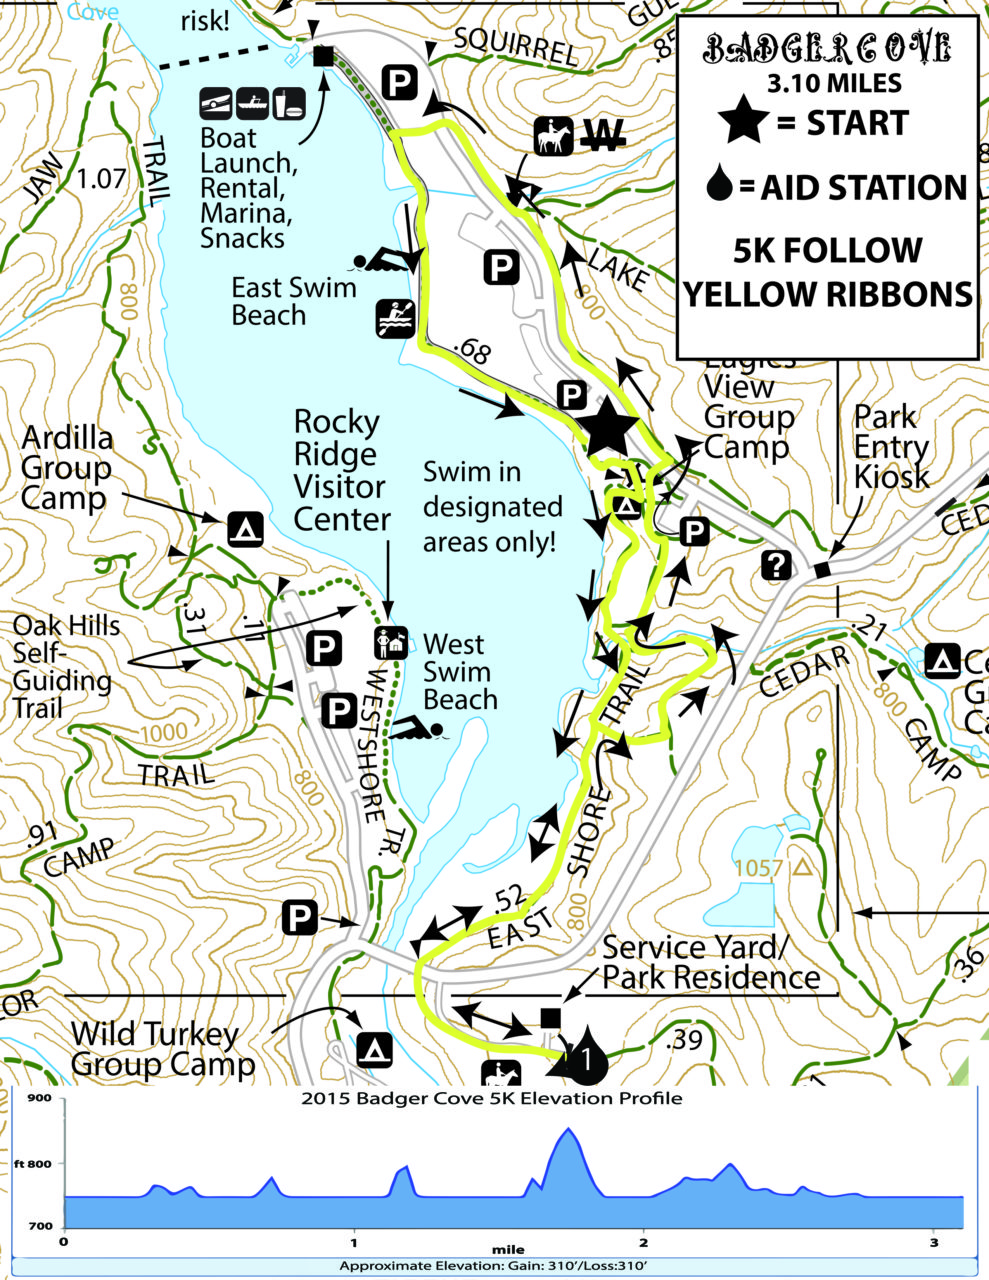 Badger Cove 5K Course Map and Elevation Chart